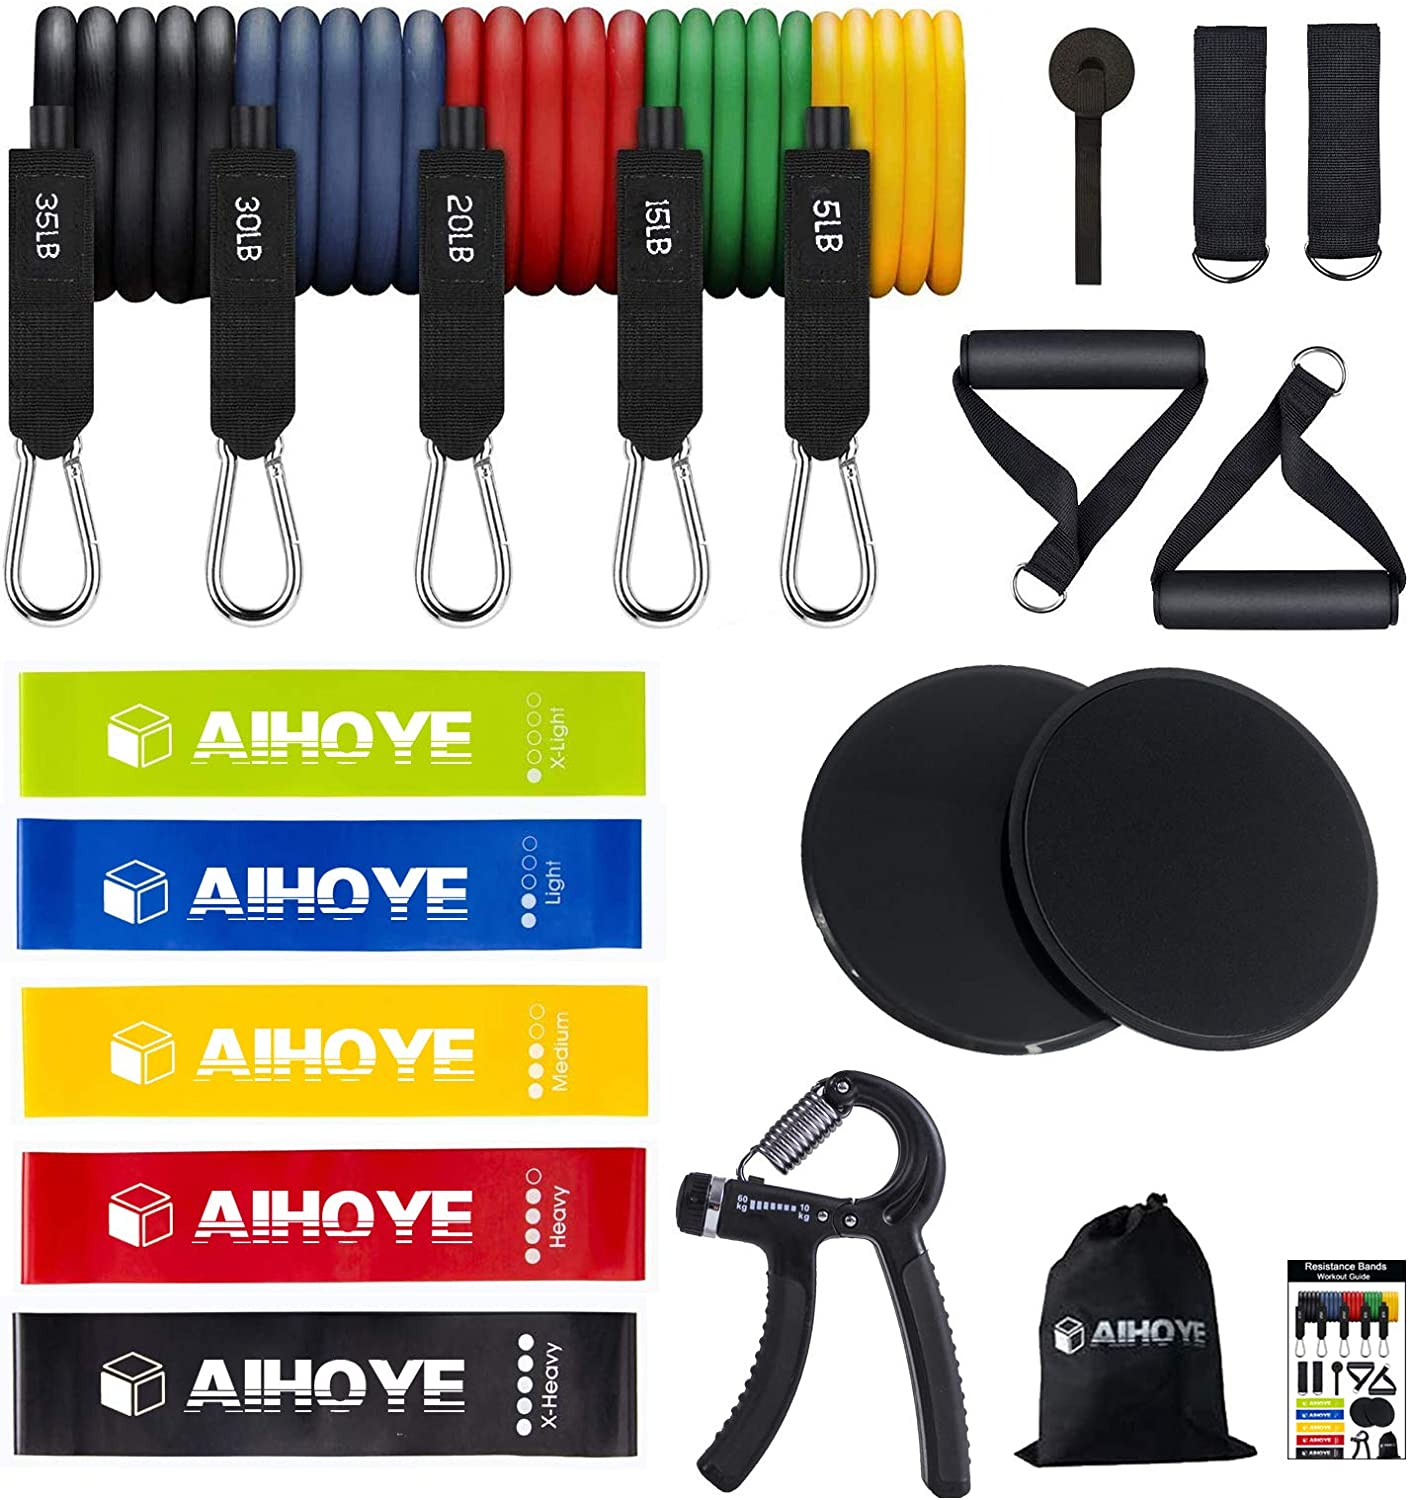 Easy to Use Resistance Bands Set Works Great Aiooy Resistance Loop Bands Resistance Exercise Bands for Home Fitness Very Durable Elastic Latex Perfect Exercise for Your Home Gym